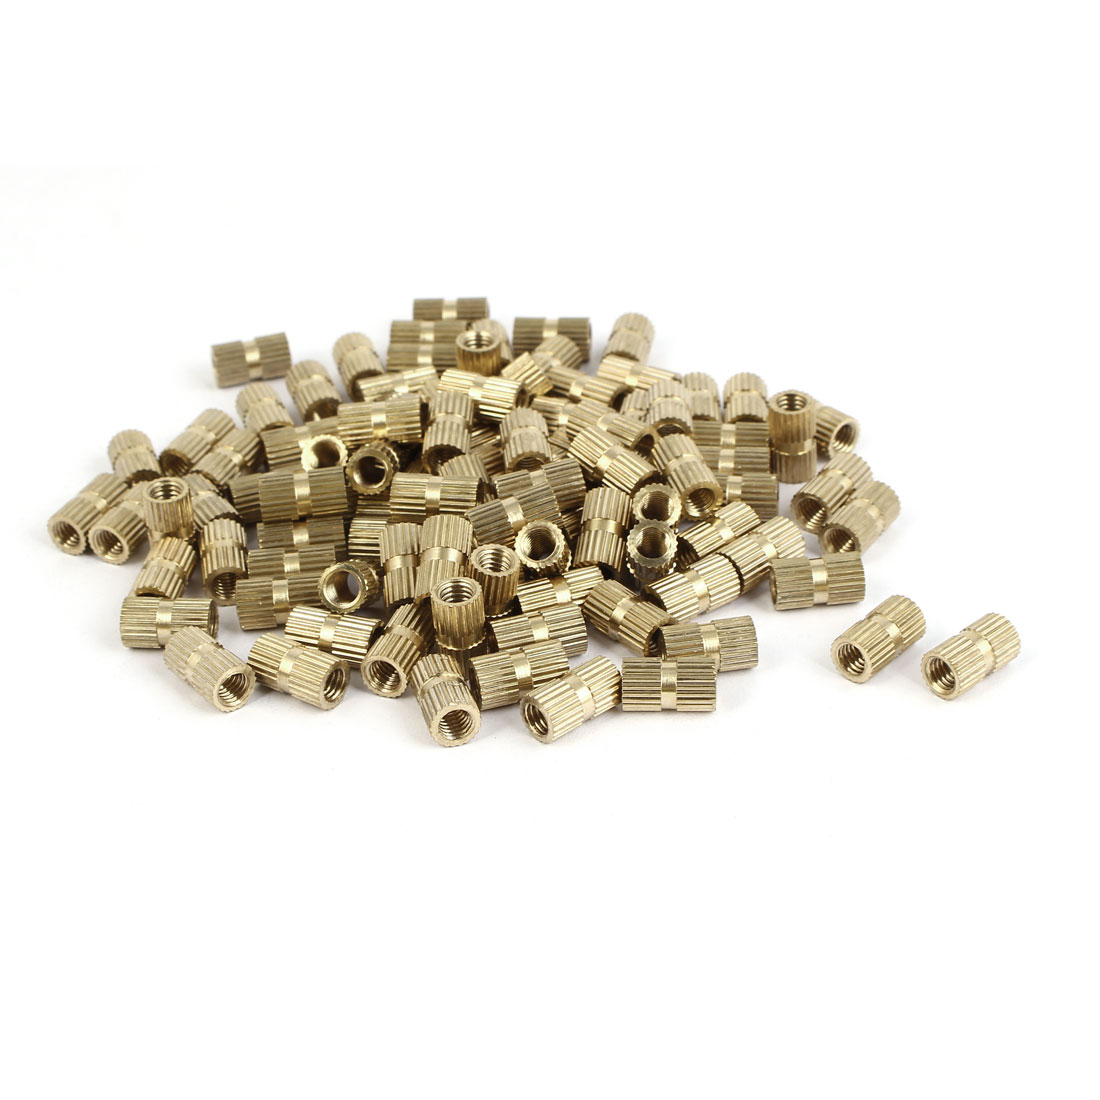 M5 x 12mm x 6.8mm Brass Injection Molding Knurled Threaded Insert Nuts 100PCS